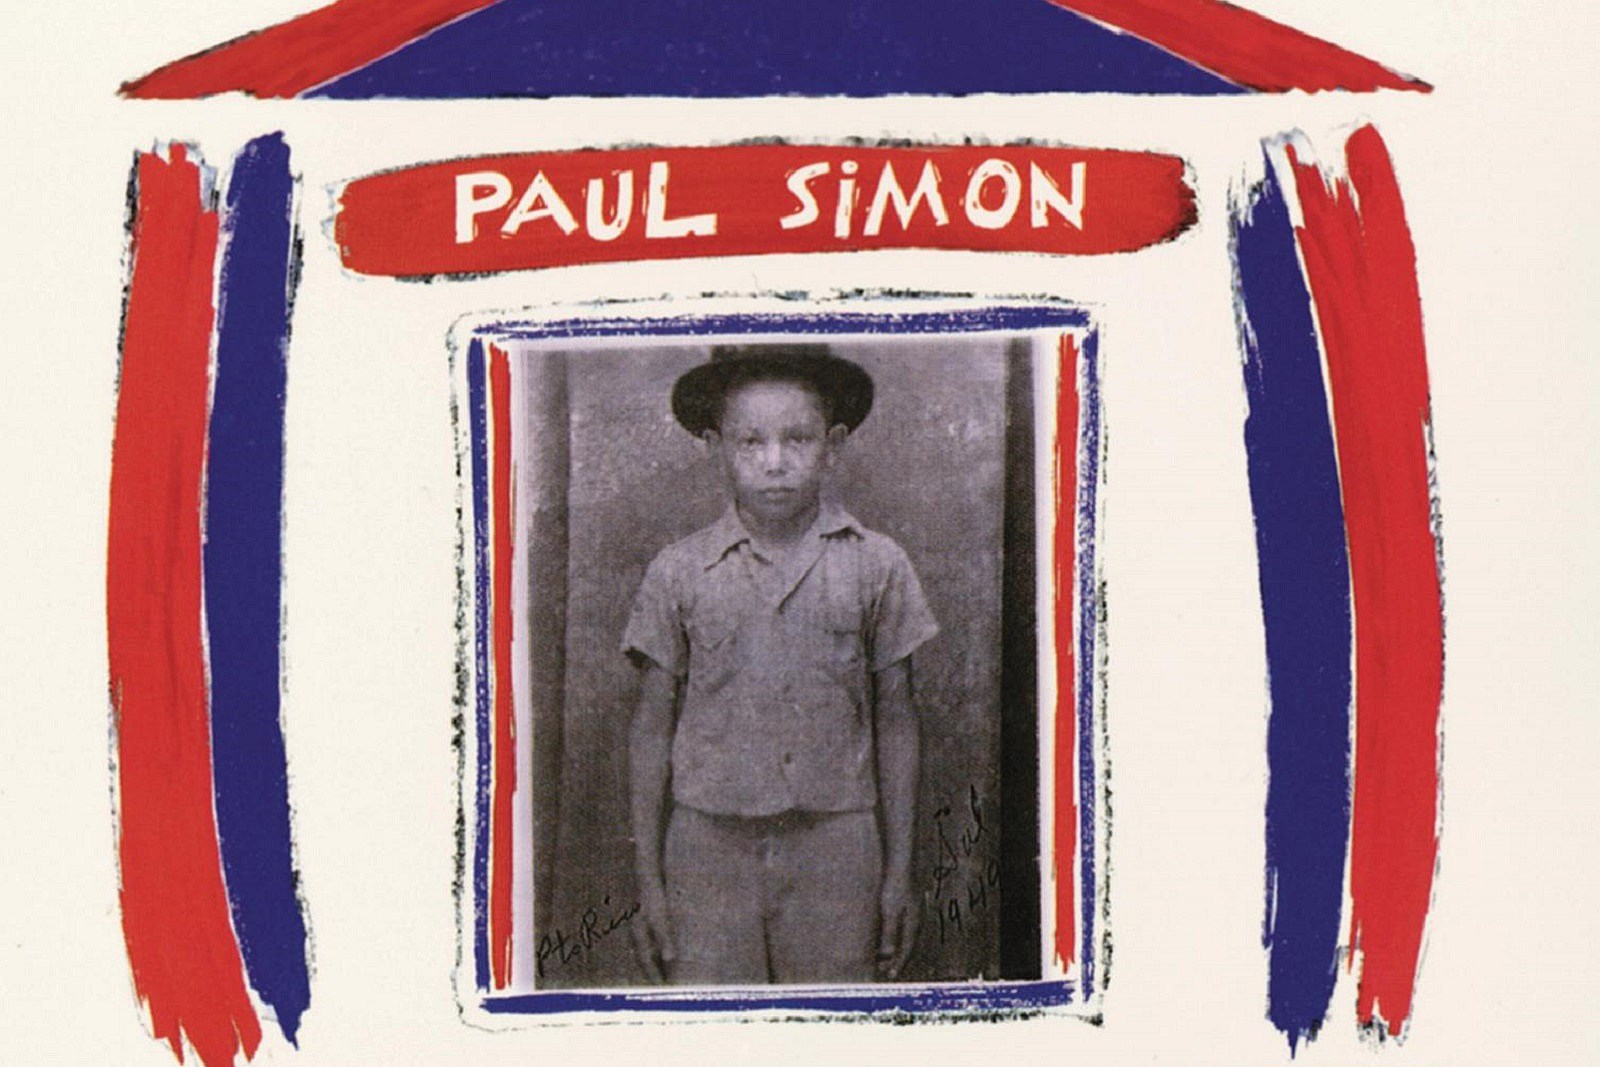 20 Years Ago: Paul Simon Previews 'Songs From the Capeman'